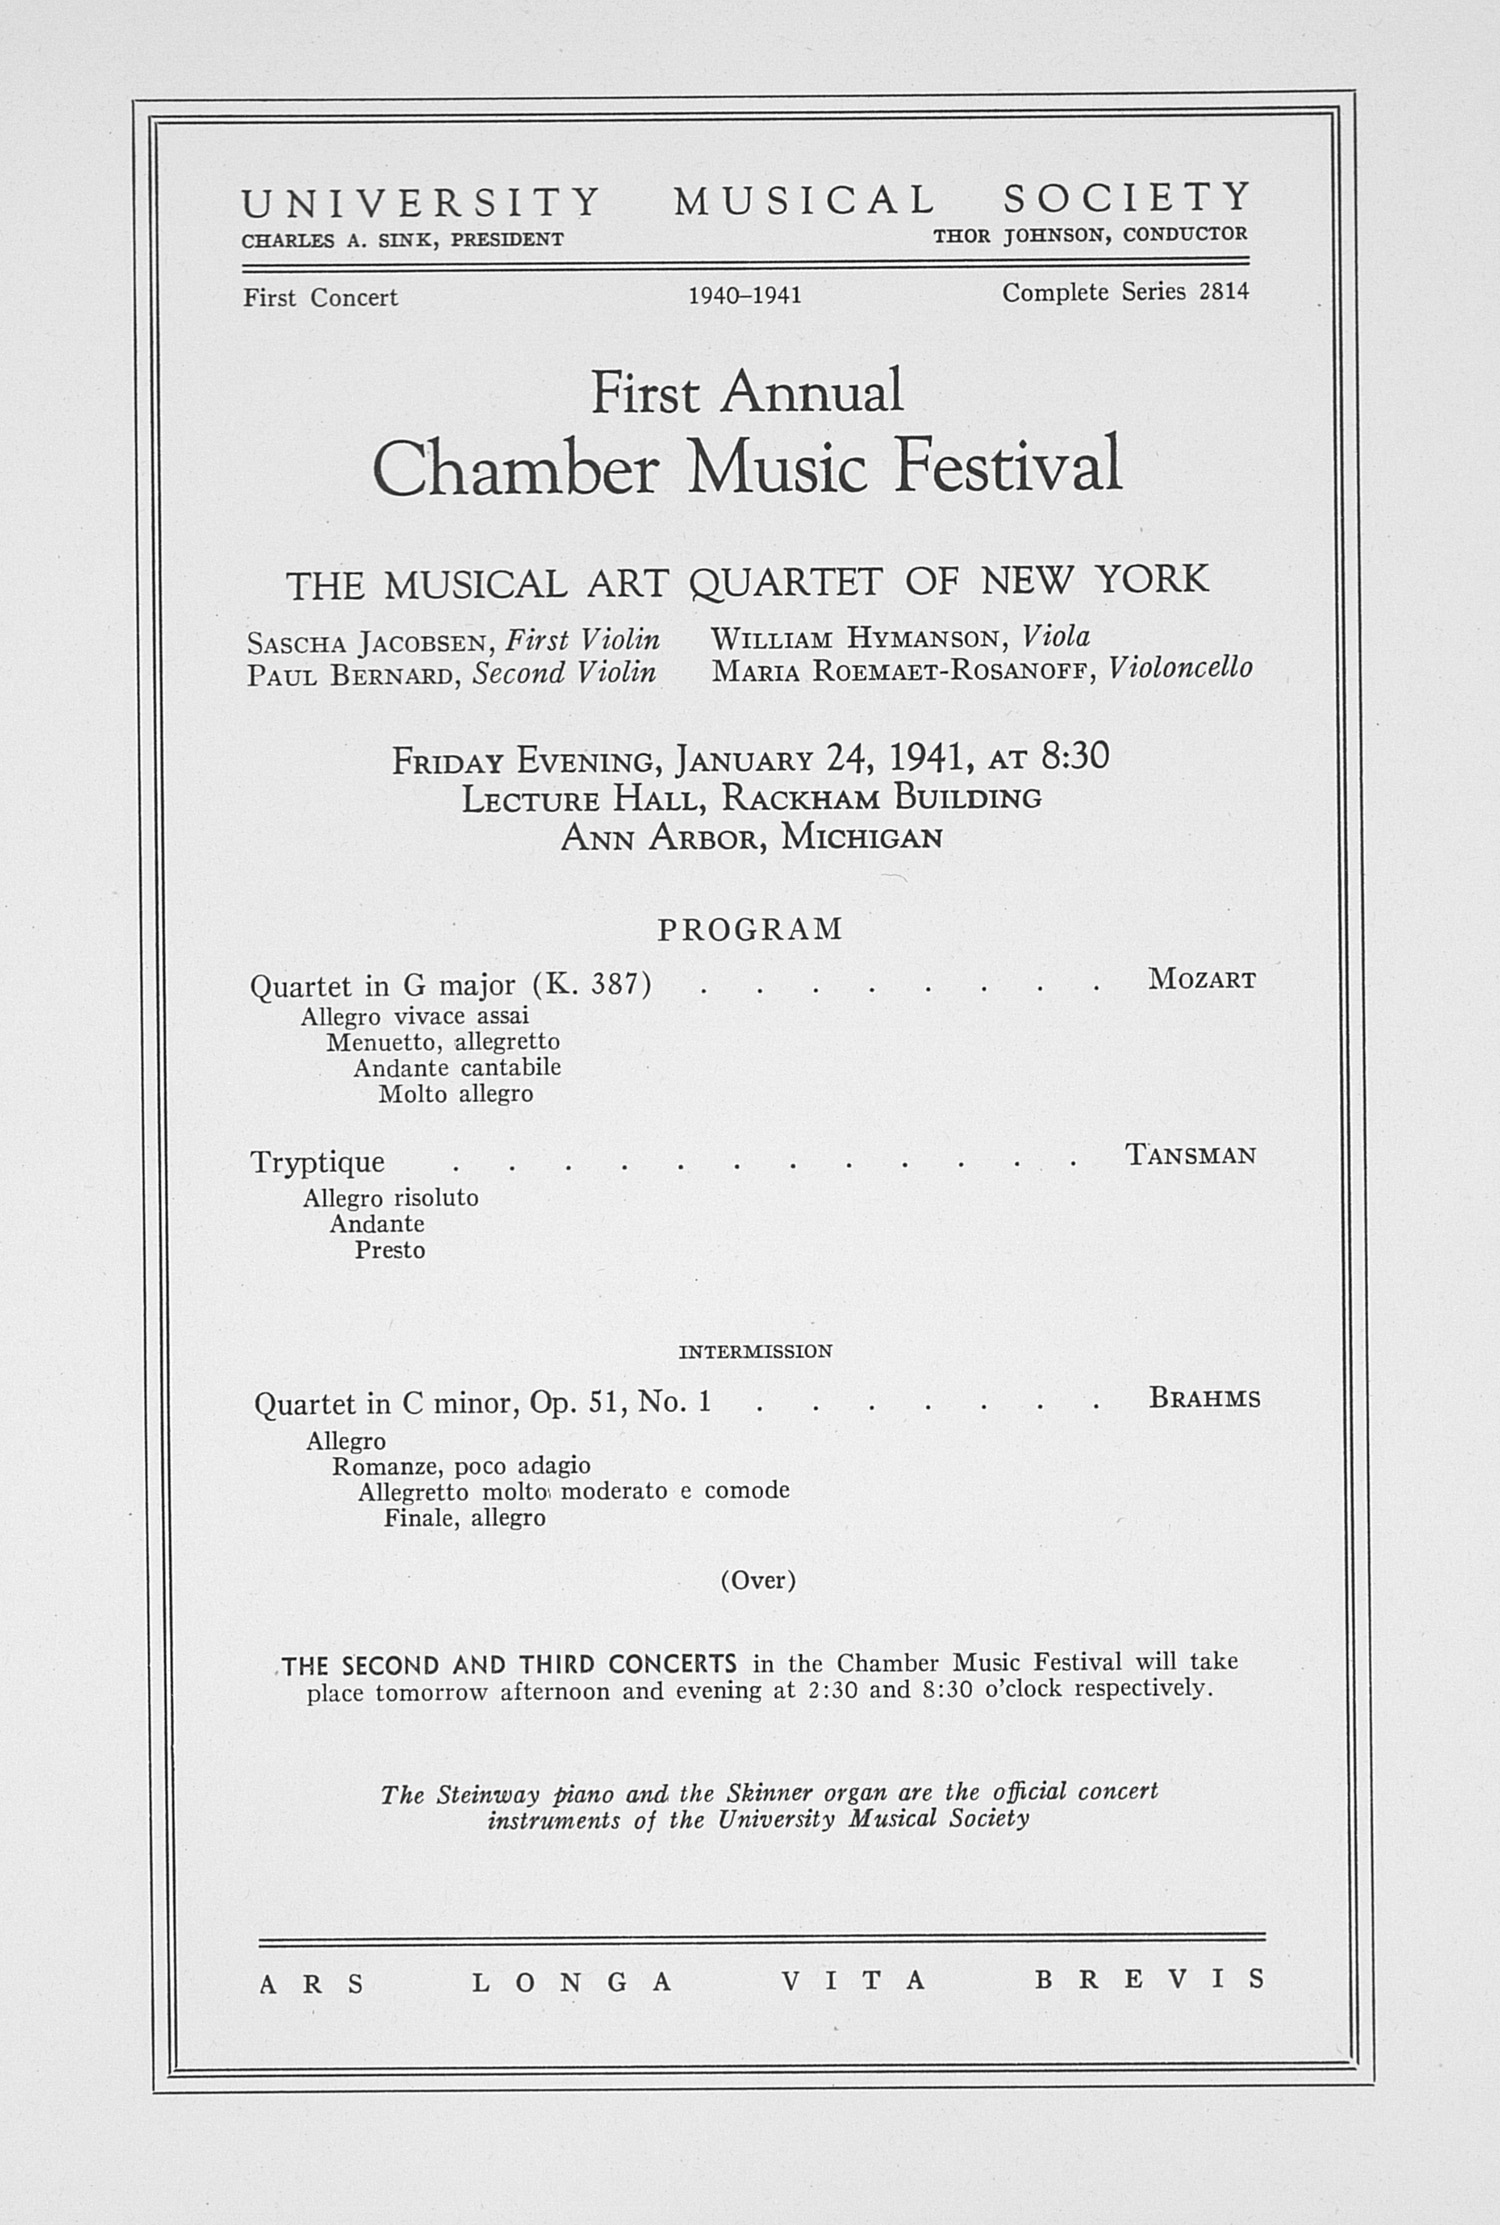 UMS Concert Program, January 24, 1941: First Annual Chamber Music Festival -- The Musical Art Quartet Of New York image